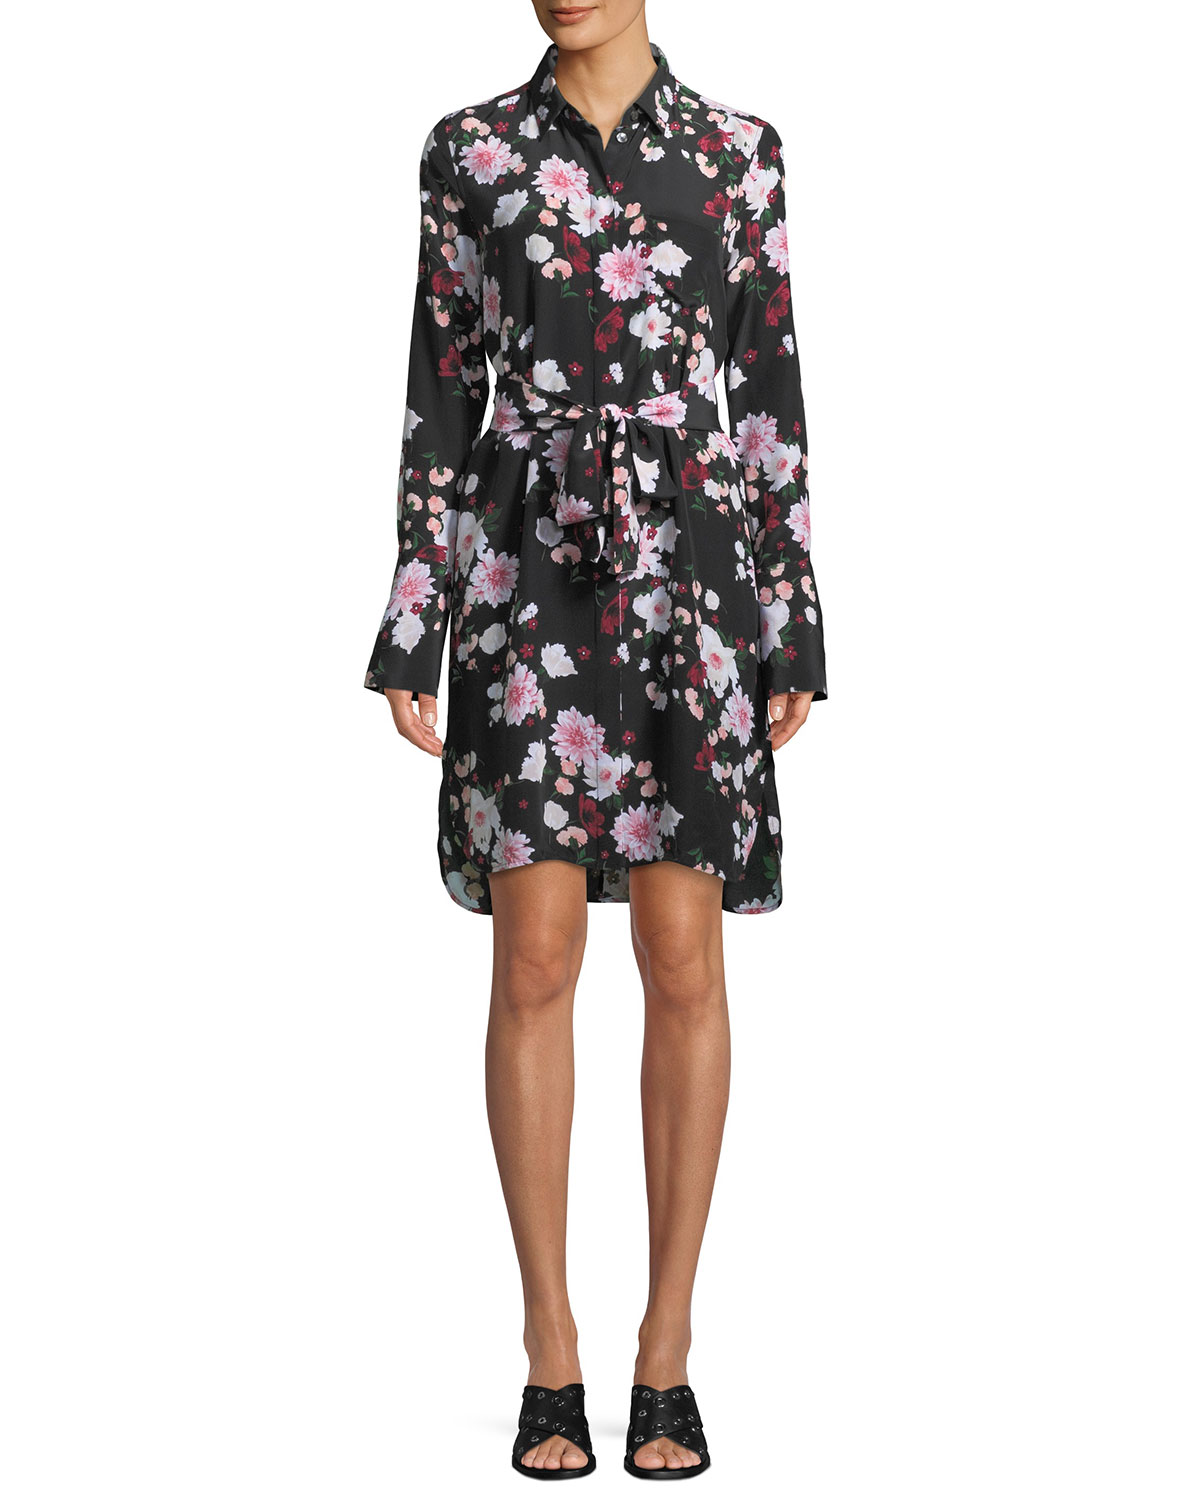 Clea Essential Garden Party Shirt Dress in Black